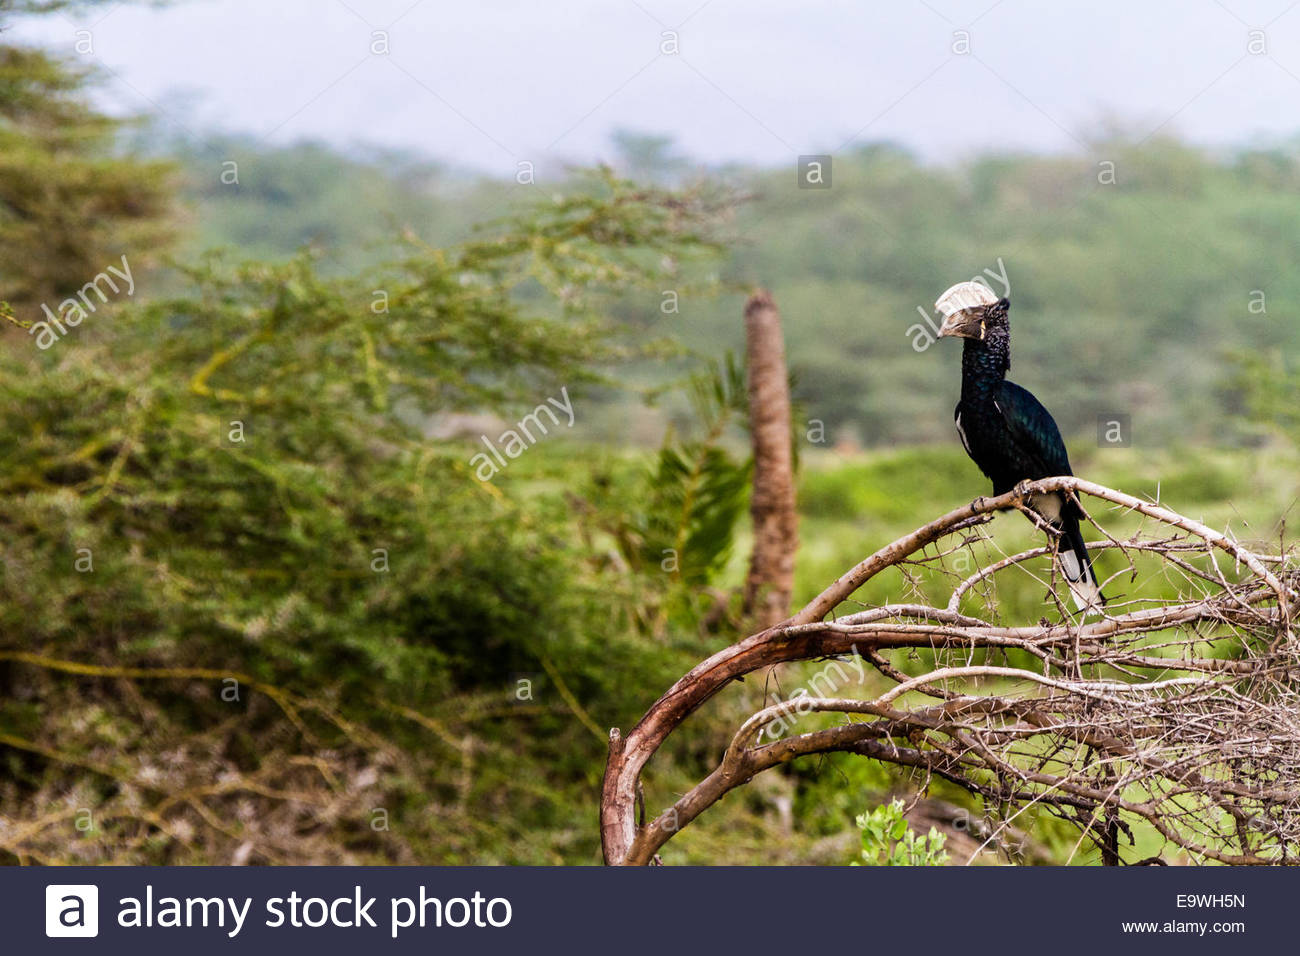 Silvery-cheeked hornbill perching on tree - East Africa - Tanzania - Stock Image